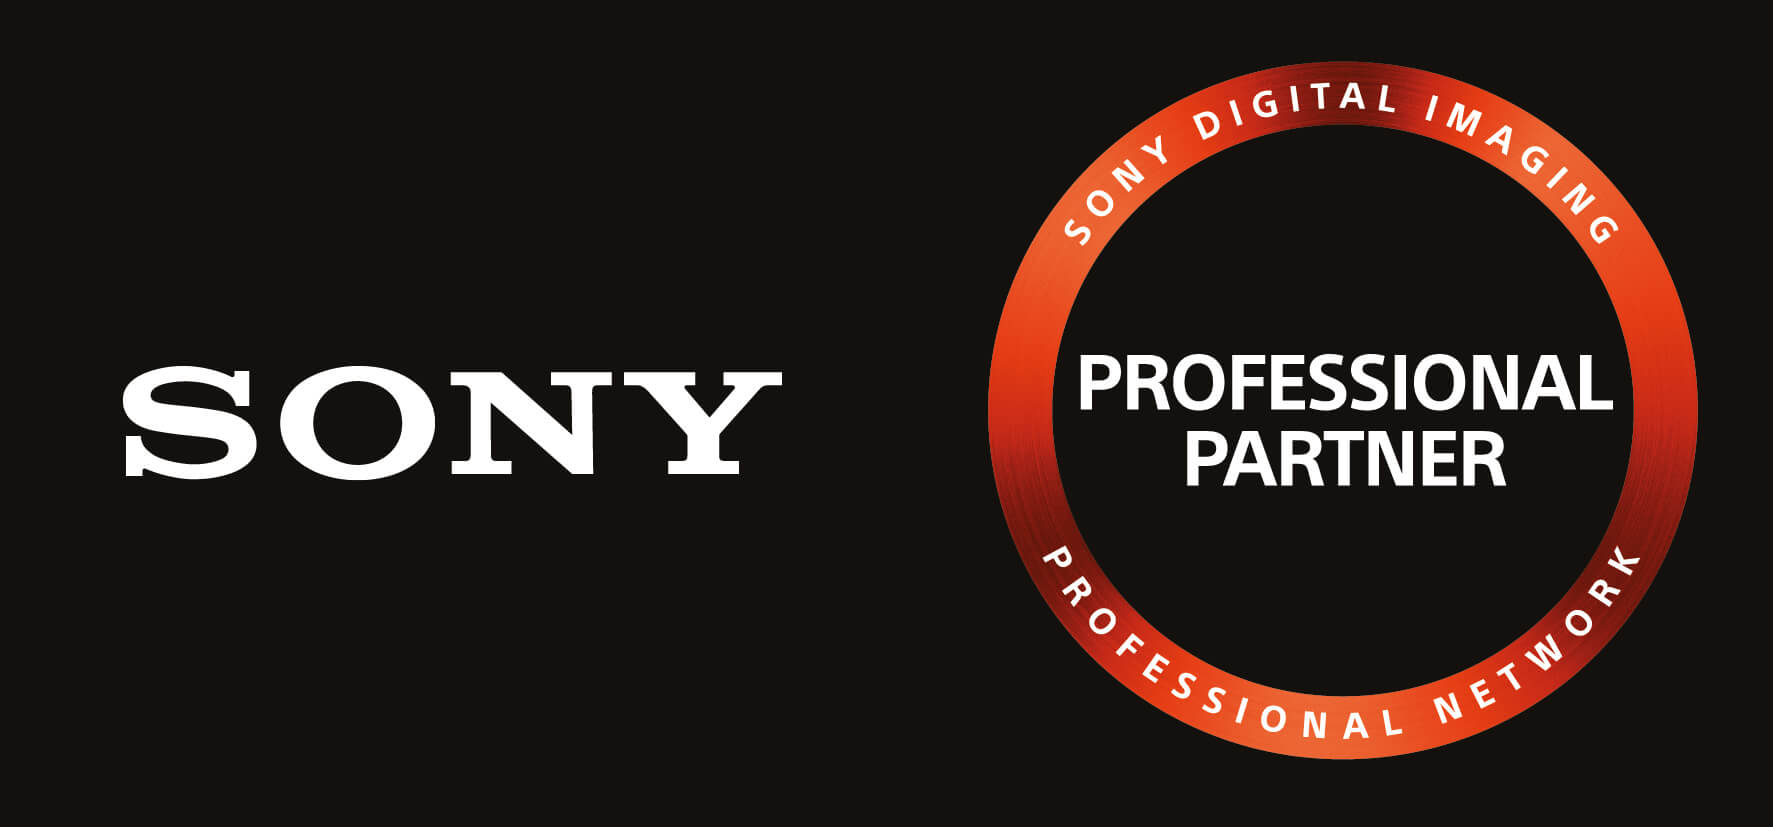 Sony Professional Partner